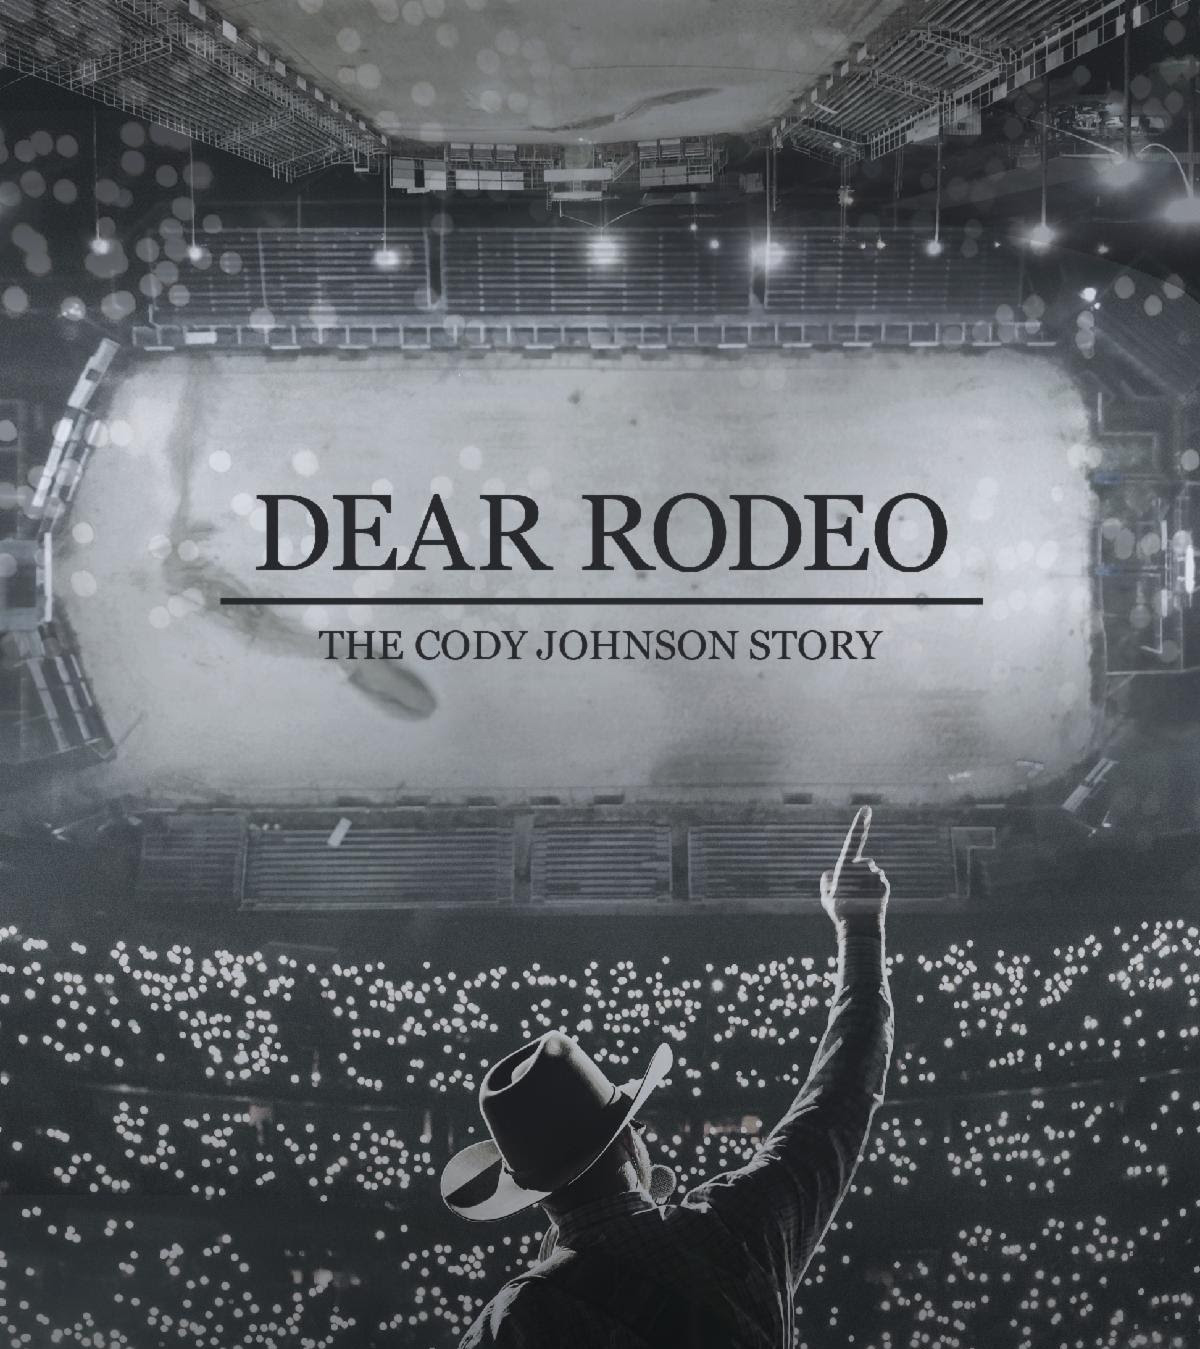 DEAR RODEO: THE CODY JOHNSON STORY RIDES INTO CINEMAS NATIONWIDE AUGUST 10